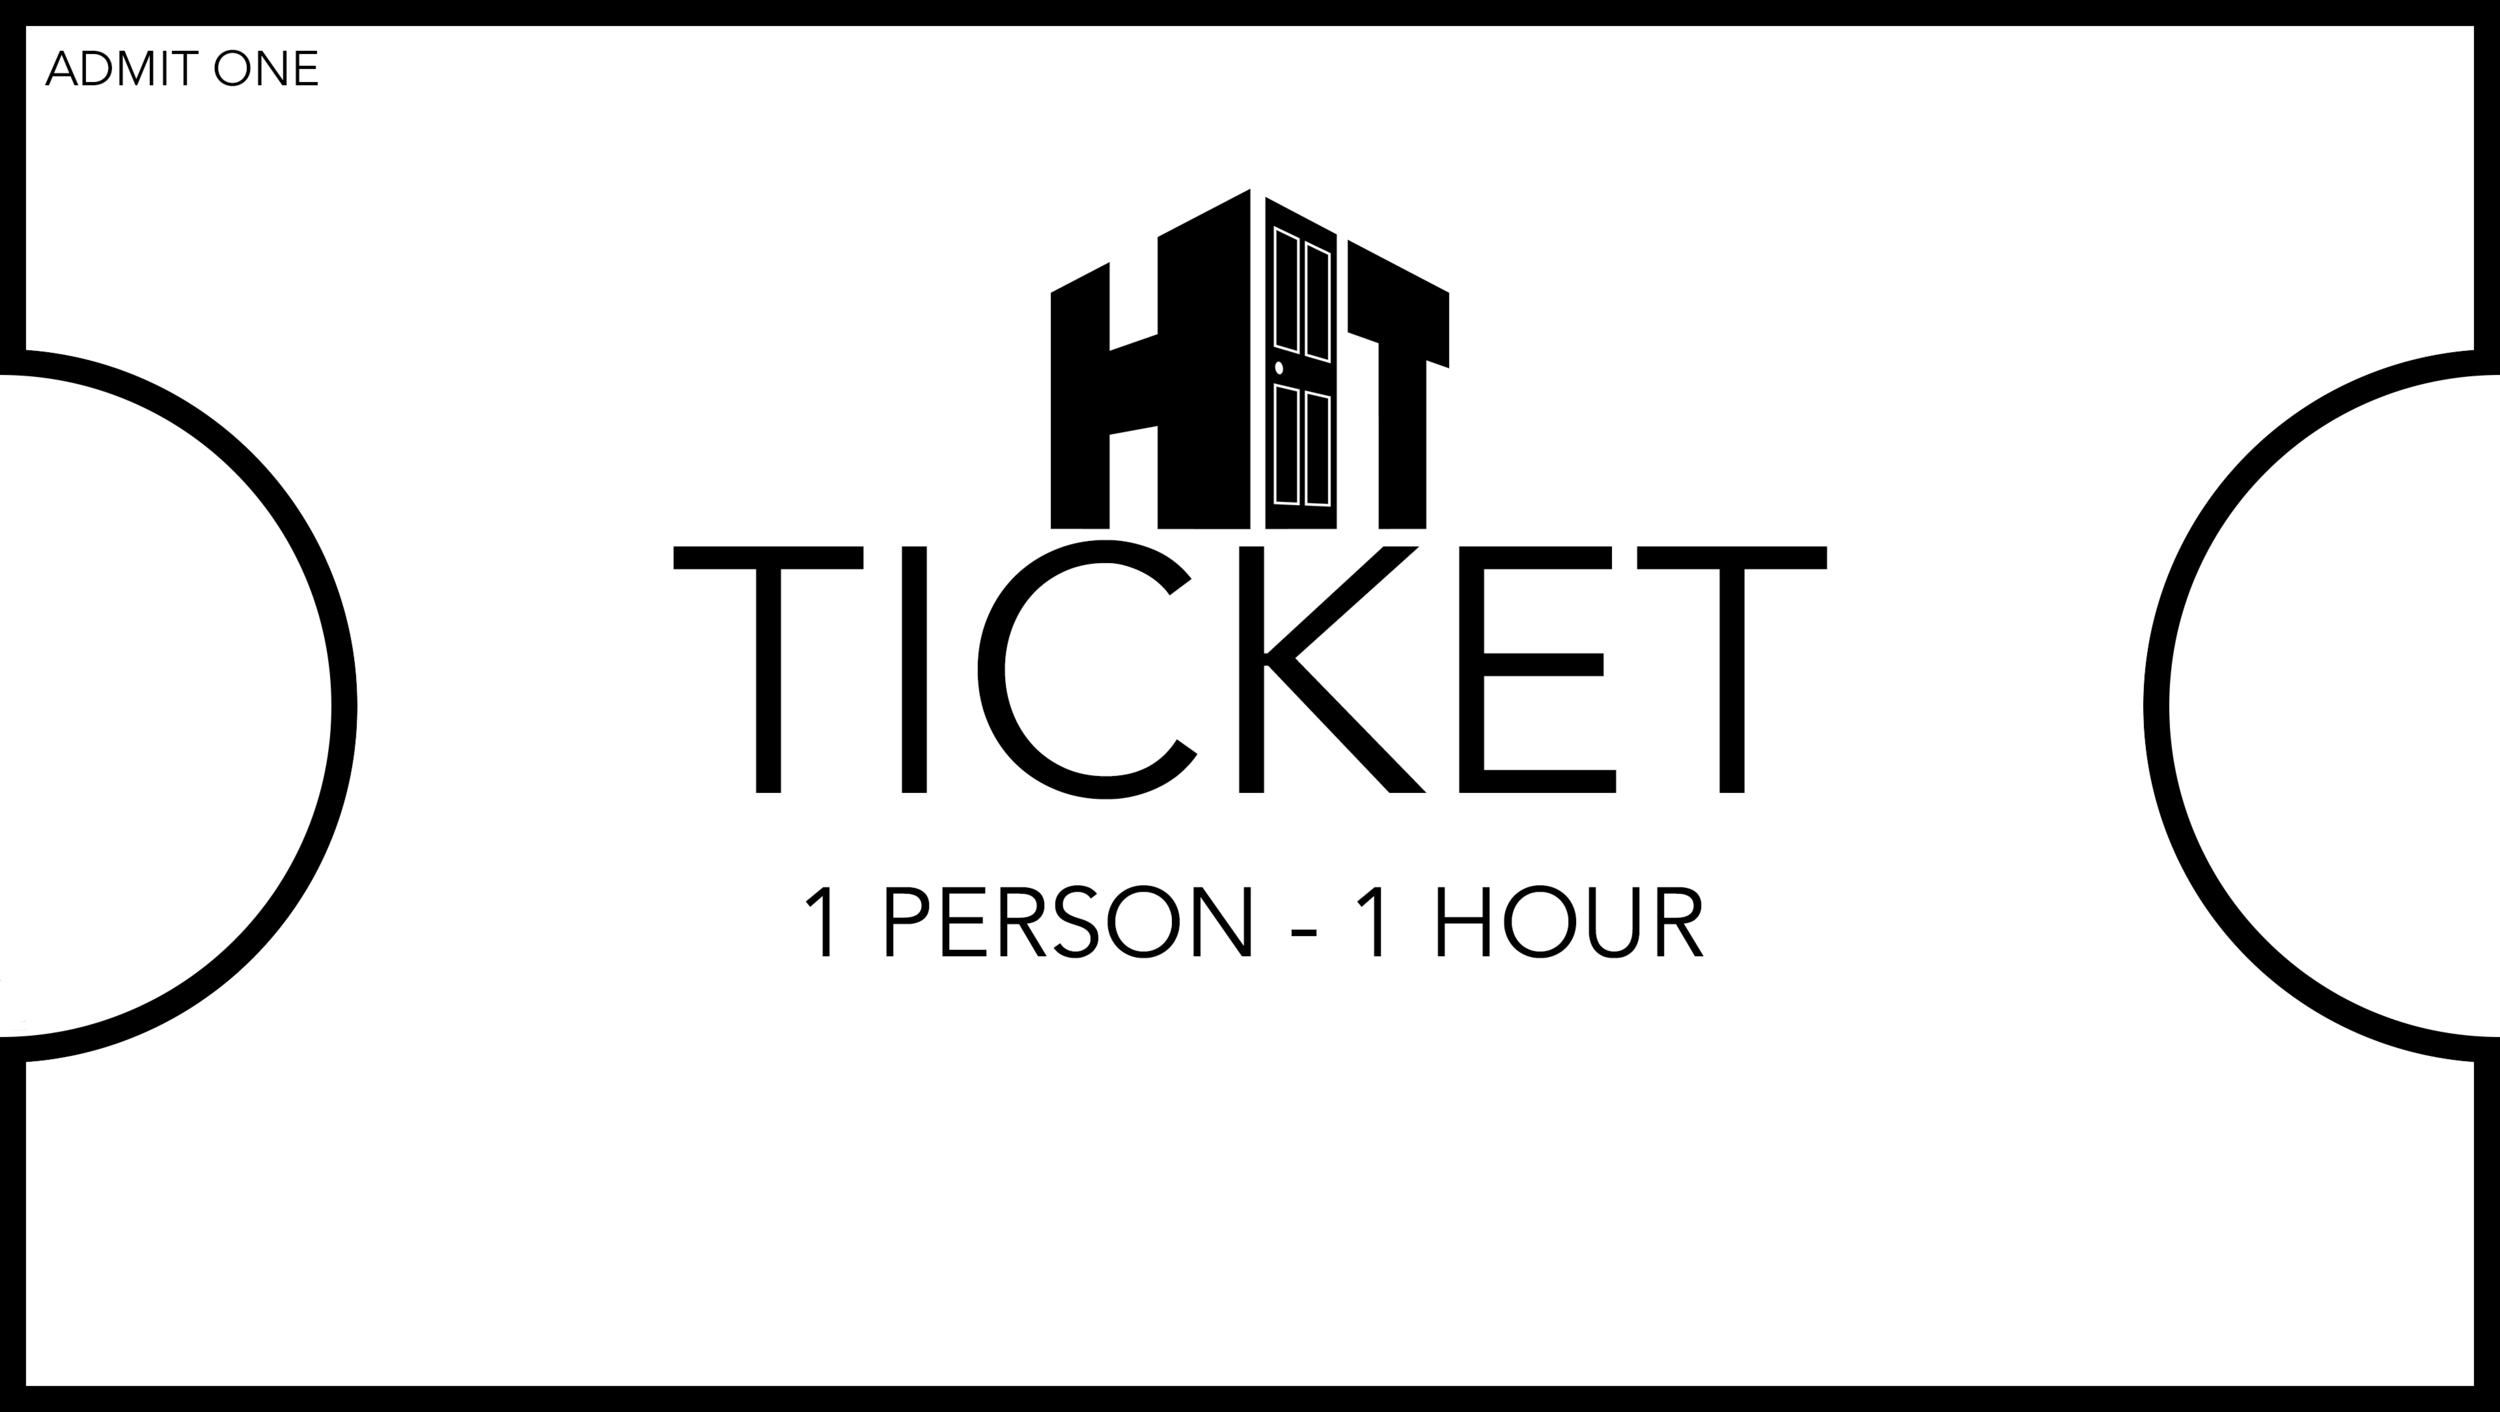 HIT_TICKET_1P1H.png